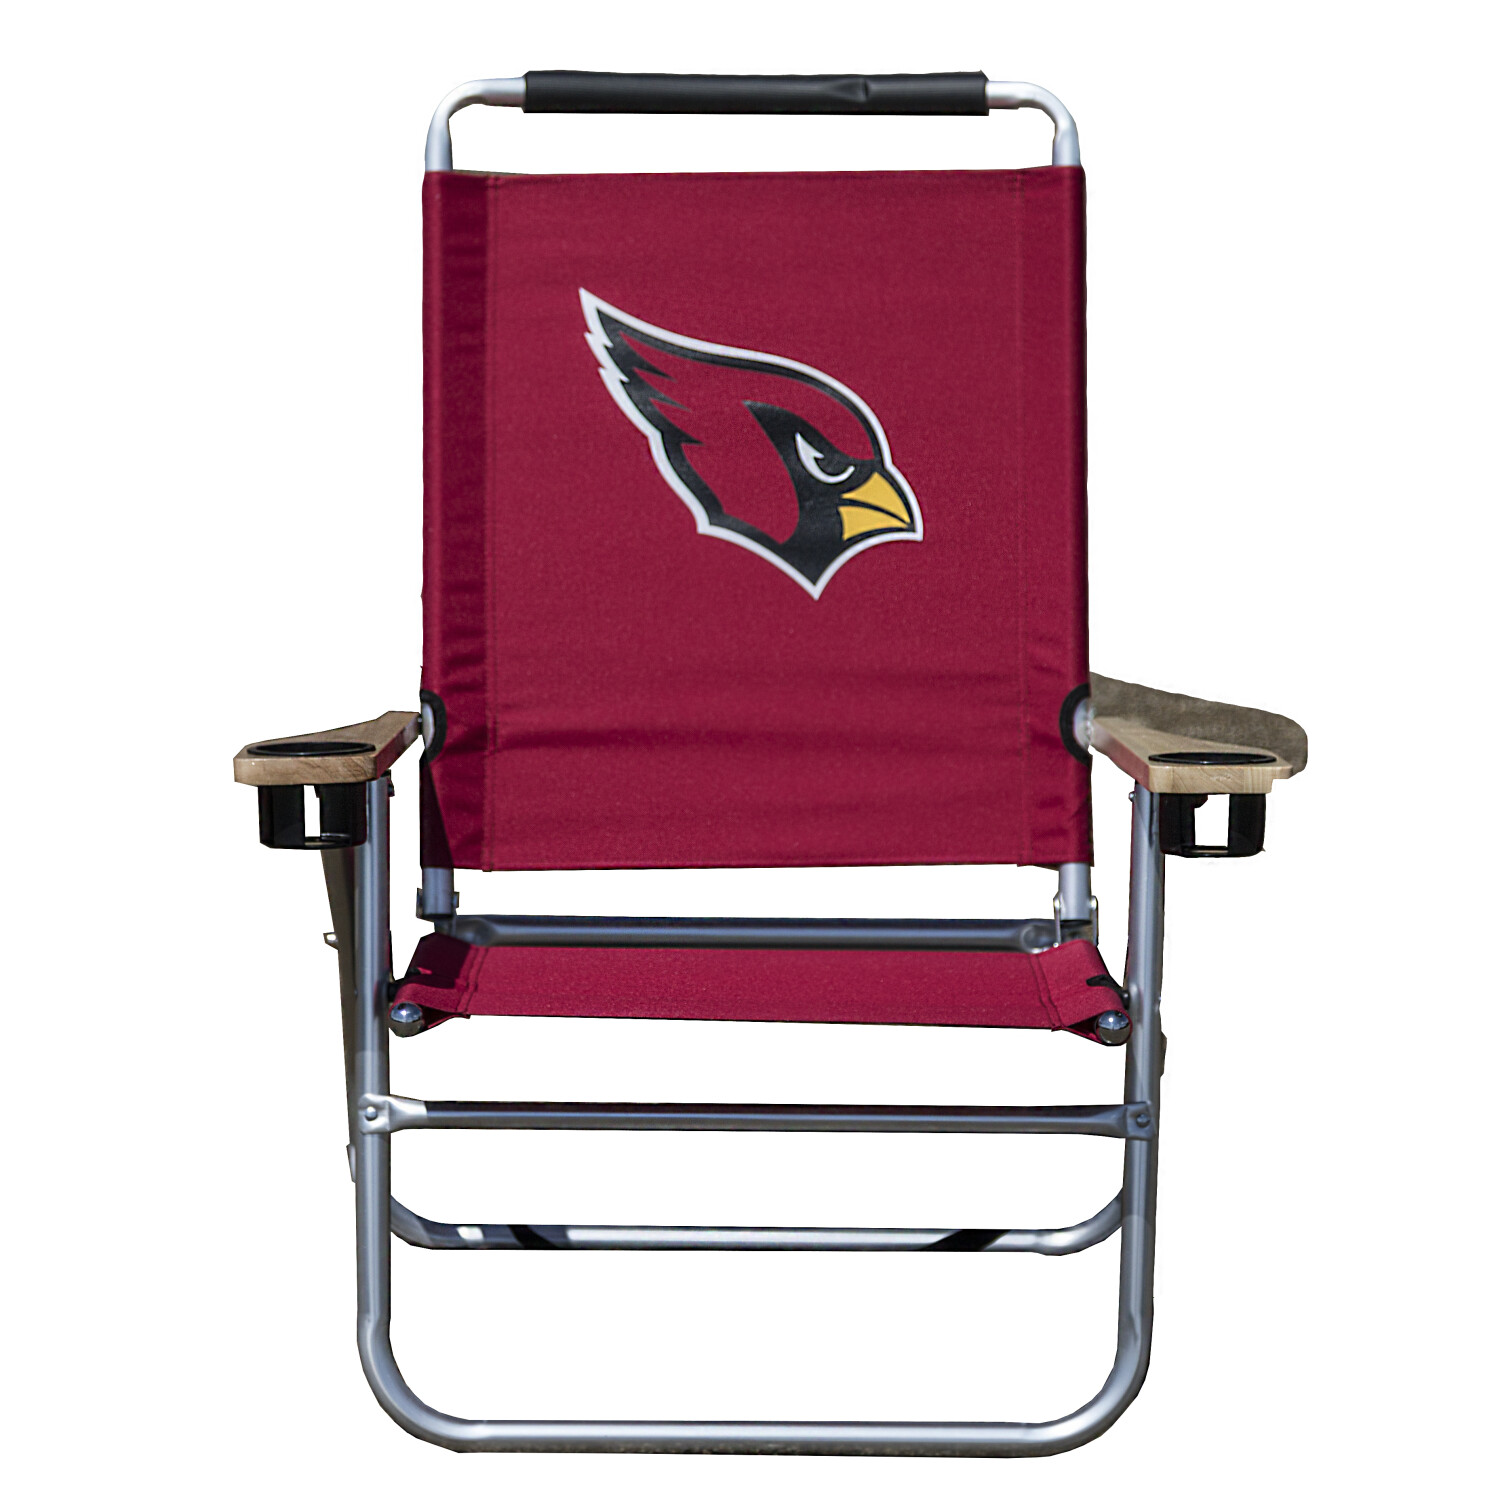 Officially Licensed Arizona Cardinals NFL Logo Beach Chair Features Dual Cup Holder and 3 Reclining Positions